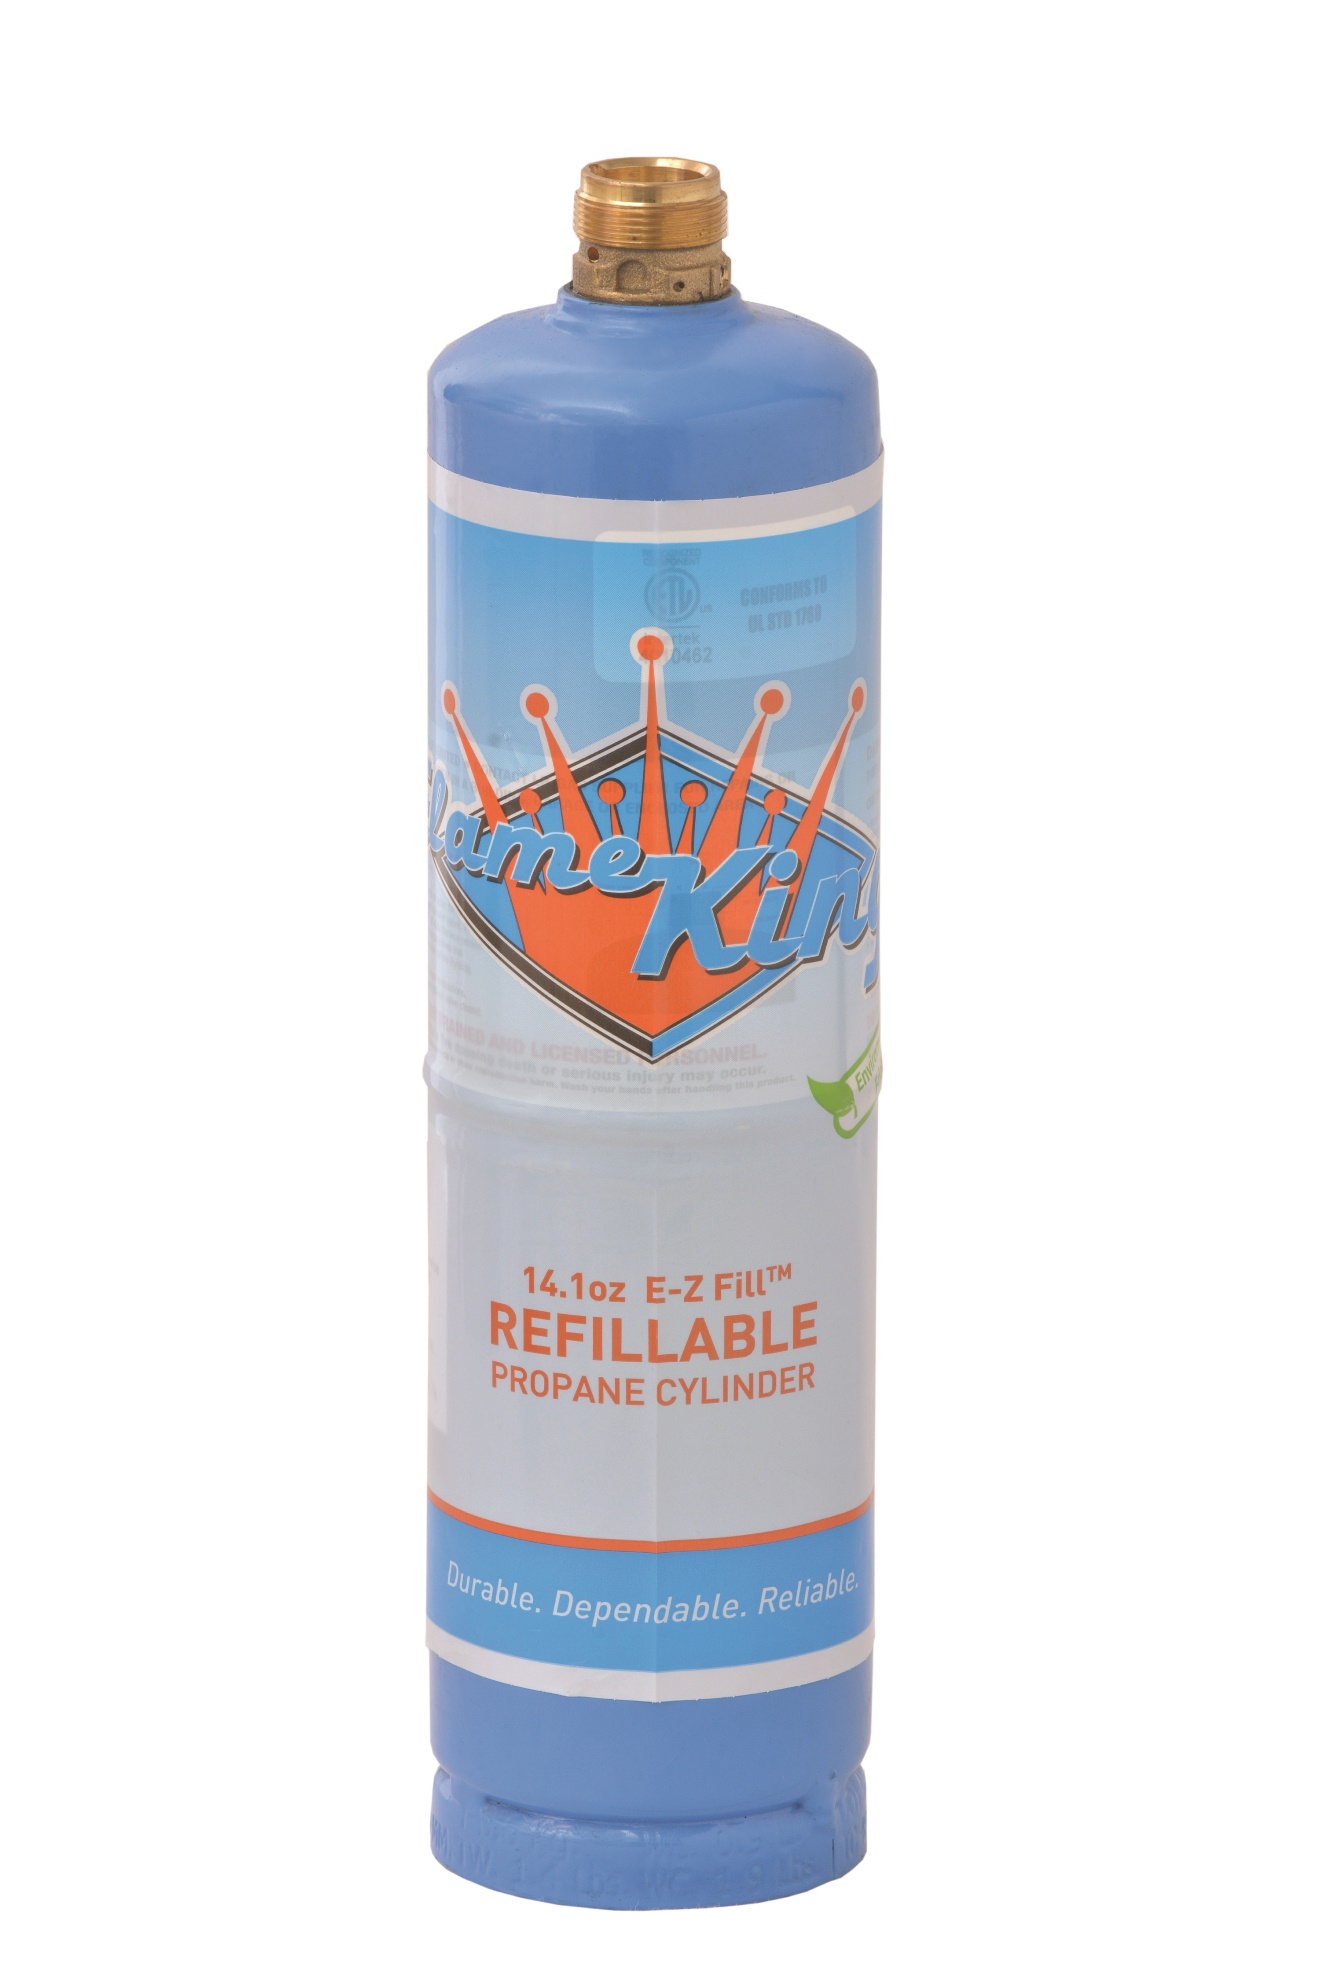 Flame King 14.1 oz. refillable propane cylinder